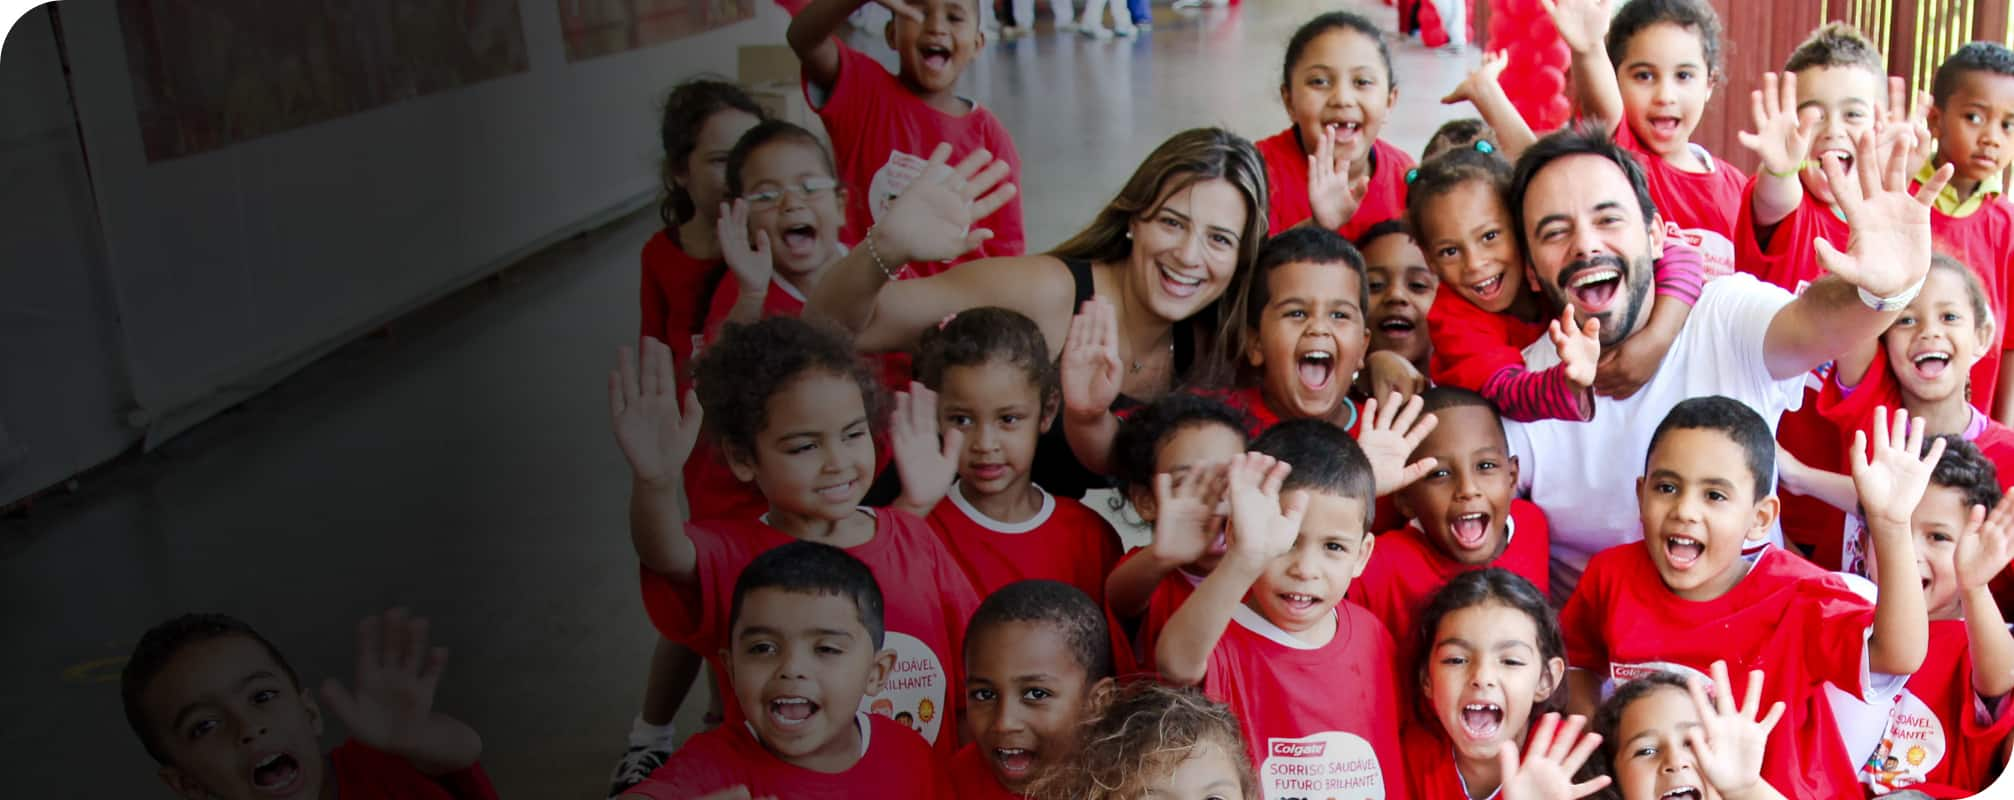 children smiling at bsbf colgate event in brazil